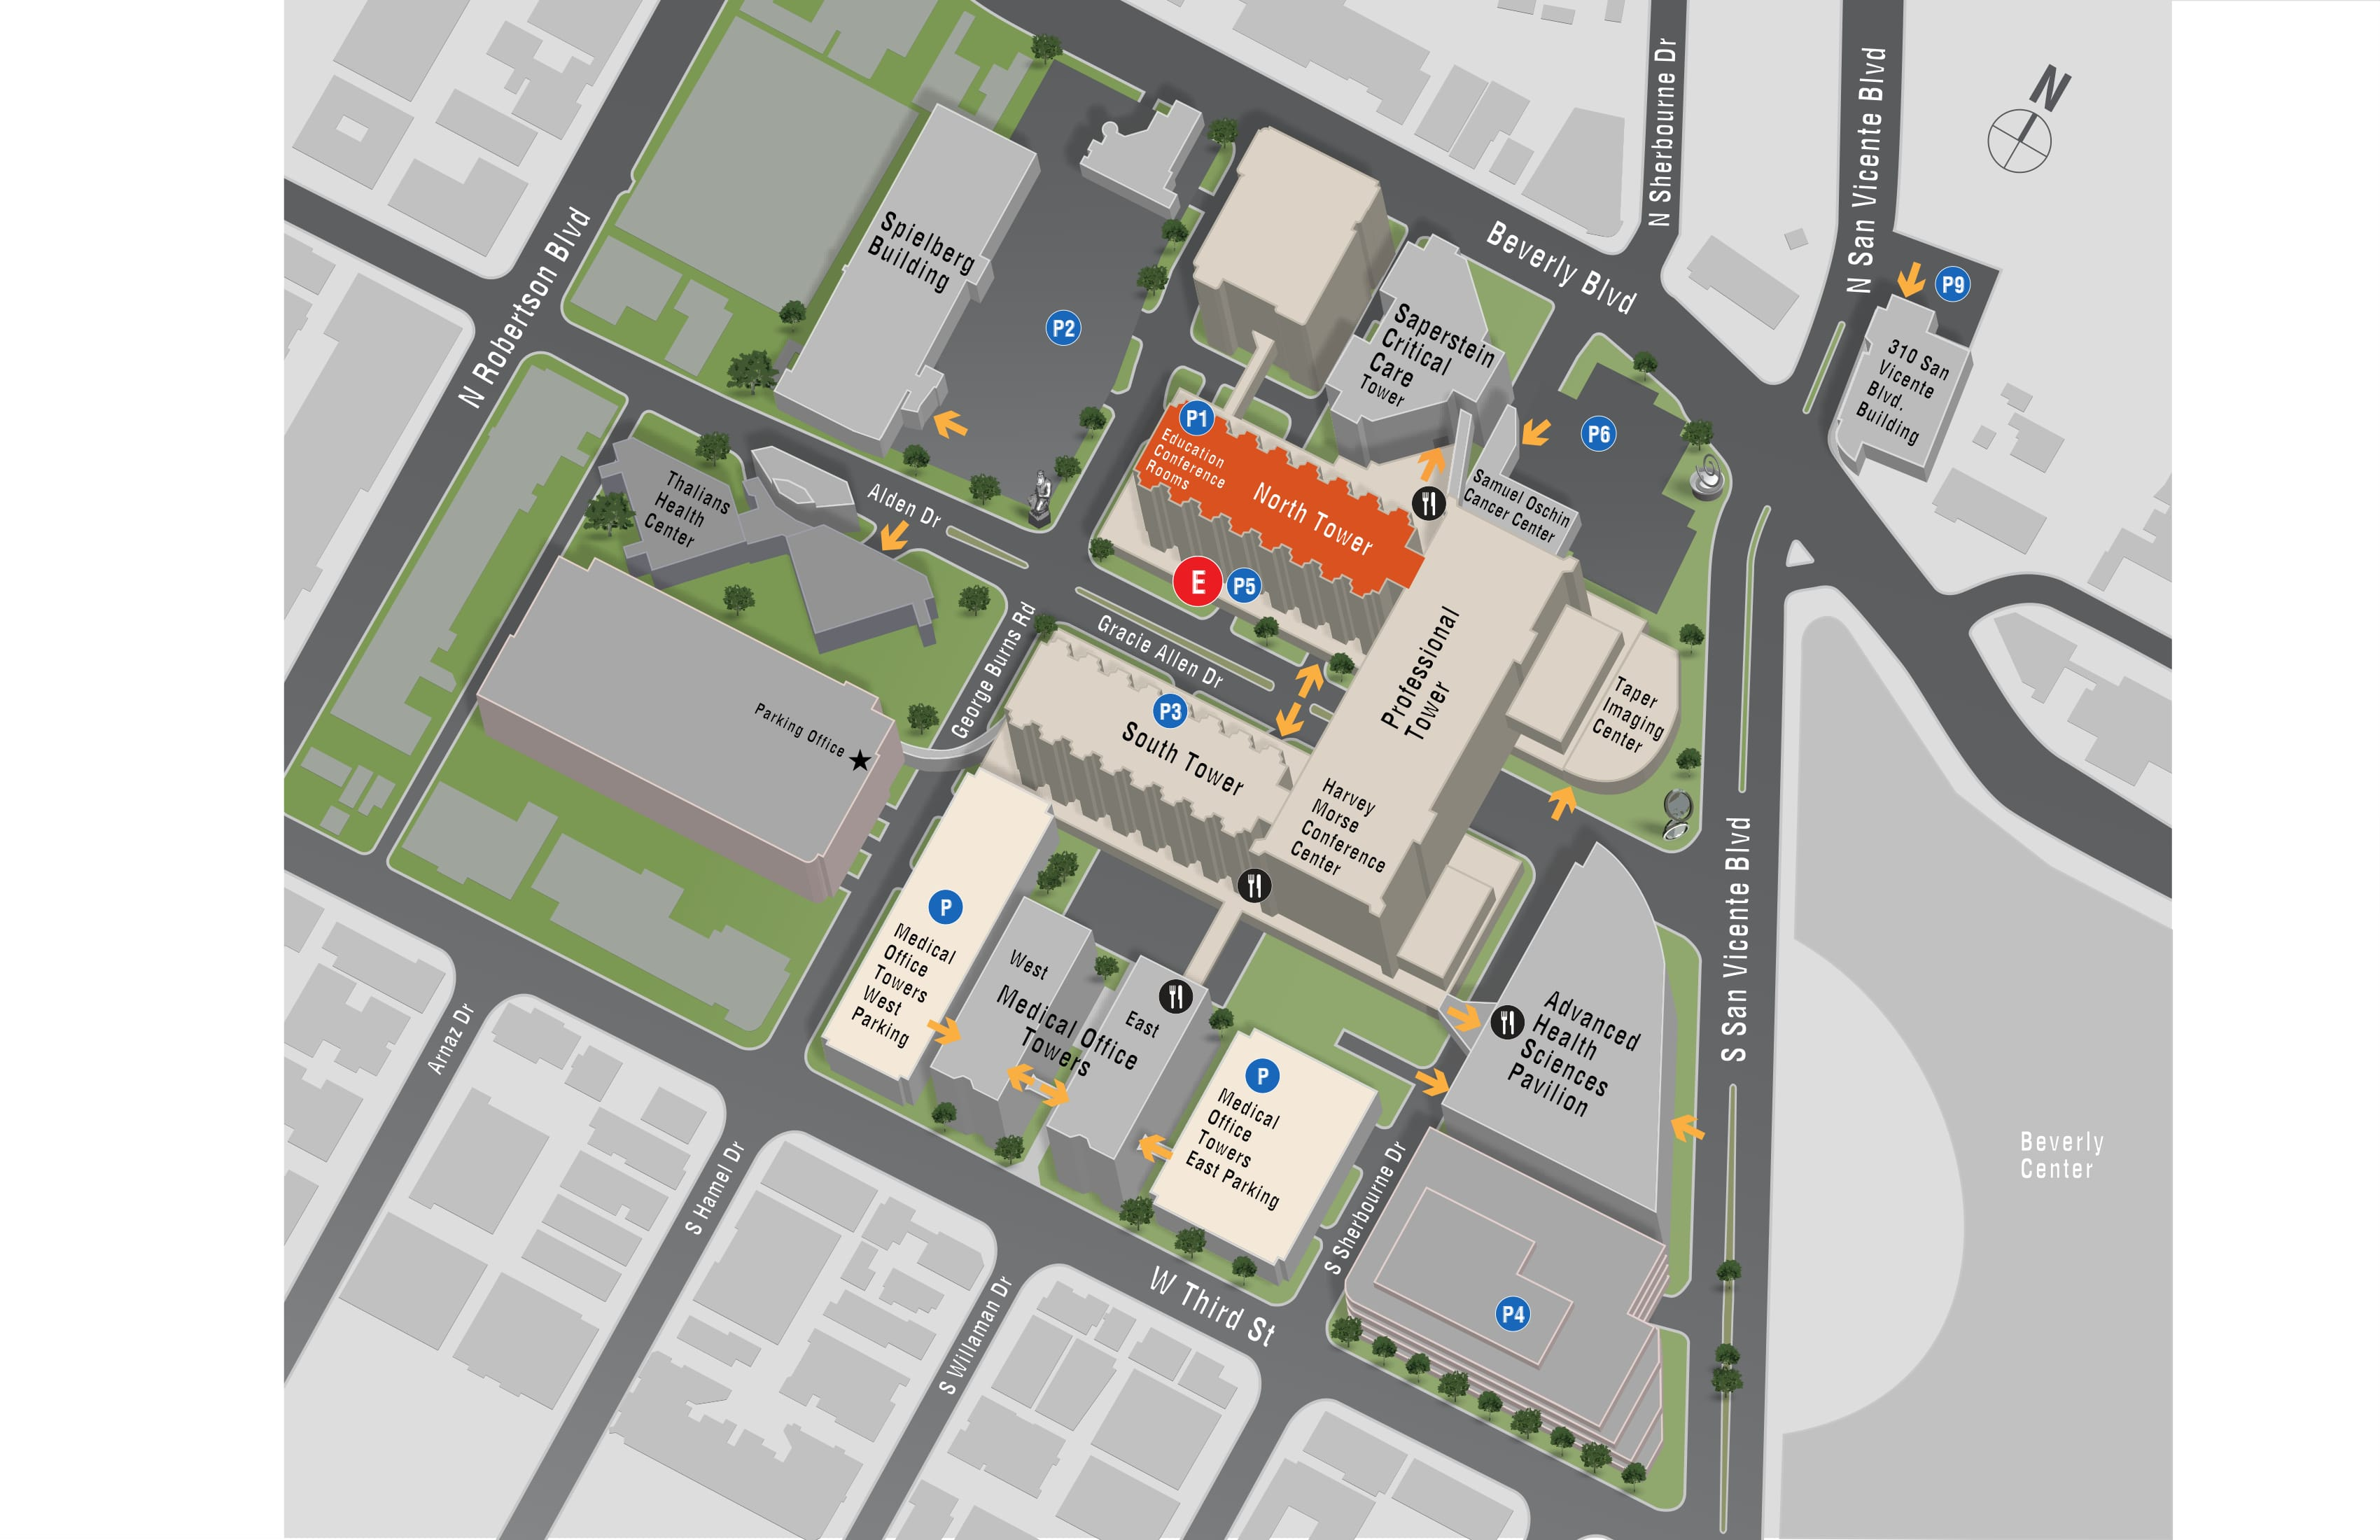 Parking map for Radiation Oncology - Cedars-Sinai Medical Center